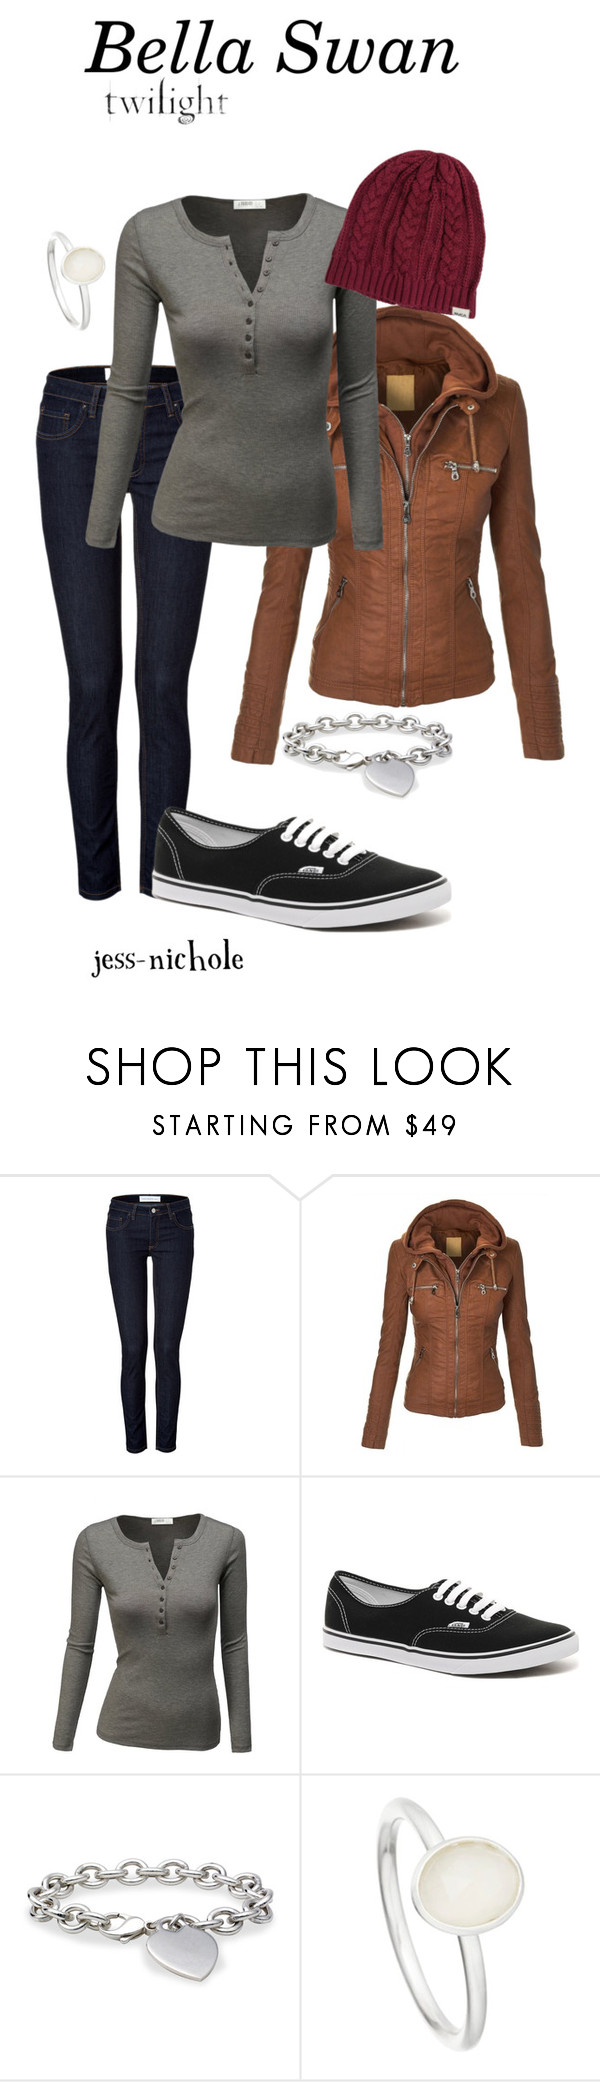 """Bella Swan"" by jess-nichole ❤ liked on Polyvore featuring dVb Victoria Beckham, J.TOMSON, Vans, Blue Nile, Astley Clarke and RVCA"